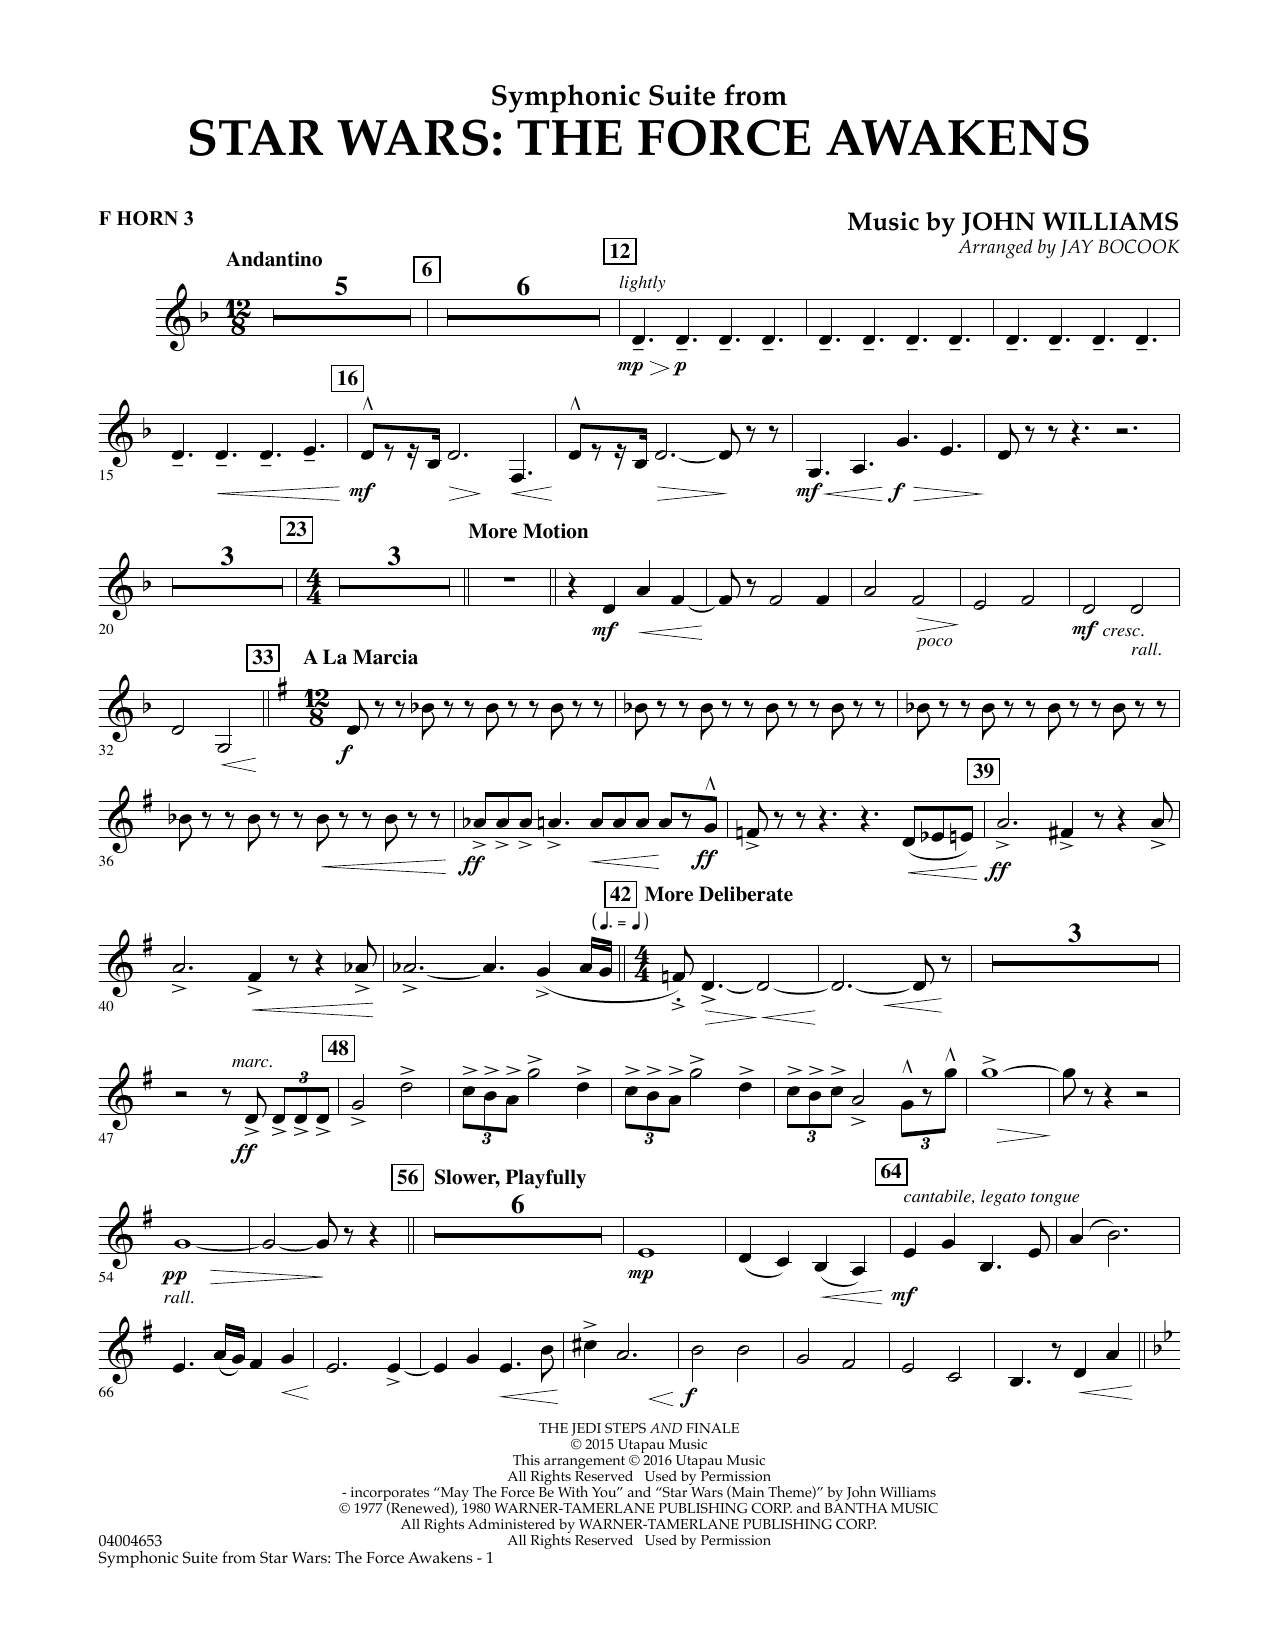 John Williams - Symphonic Suite from Star Wars: The Force Awakens - F Horn 3